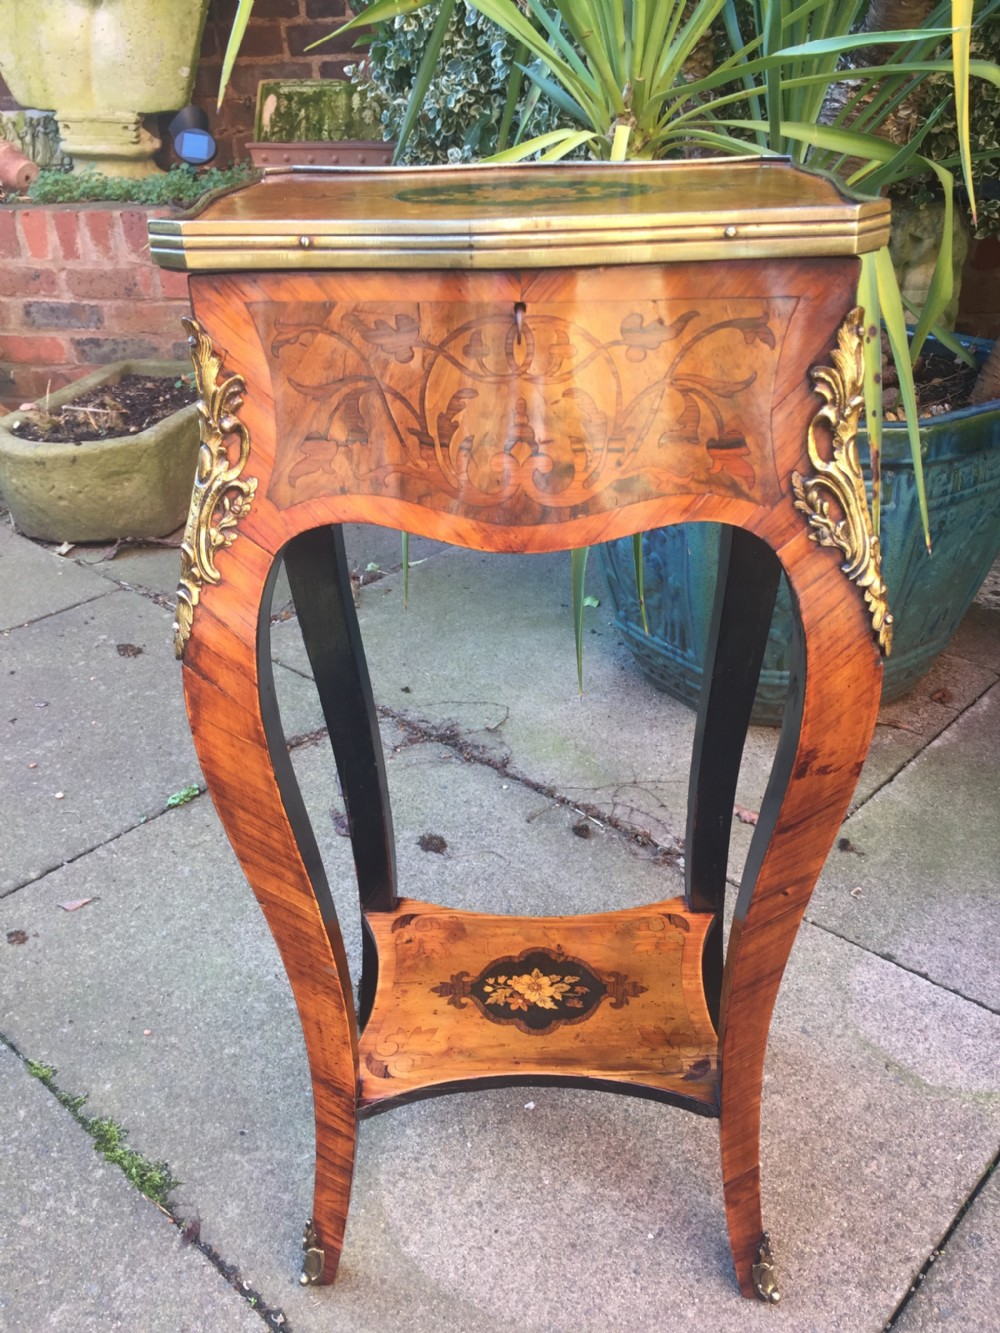 c19th french walnut kingwood and marquetry ormolumounted side table or tricoteuse of louis xvi design